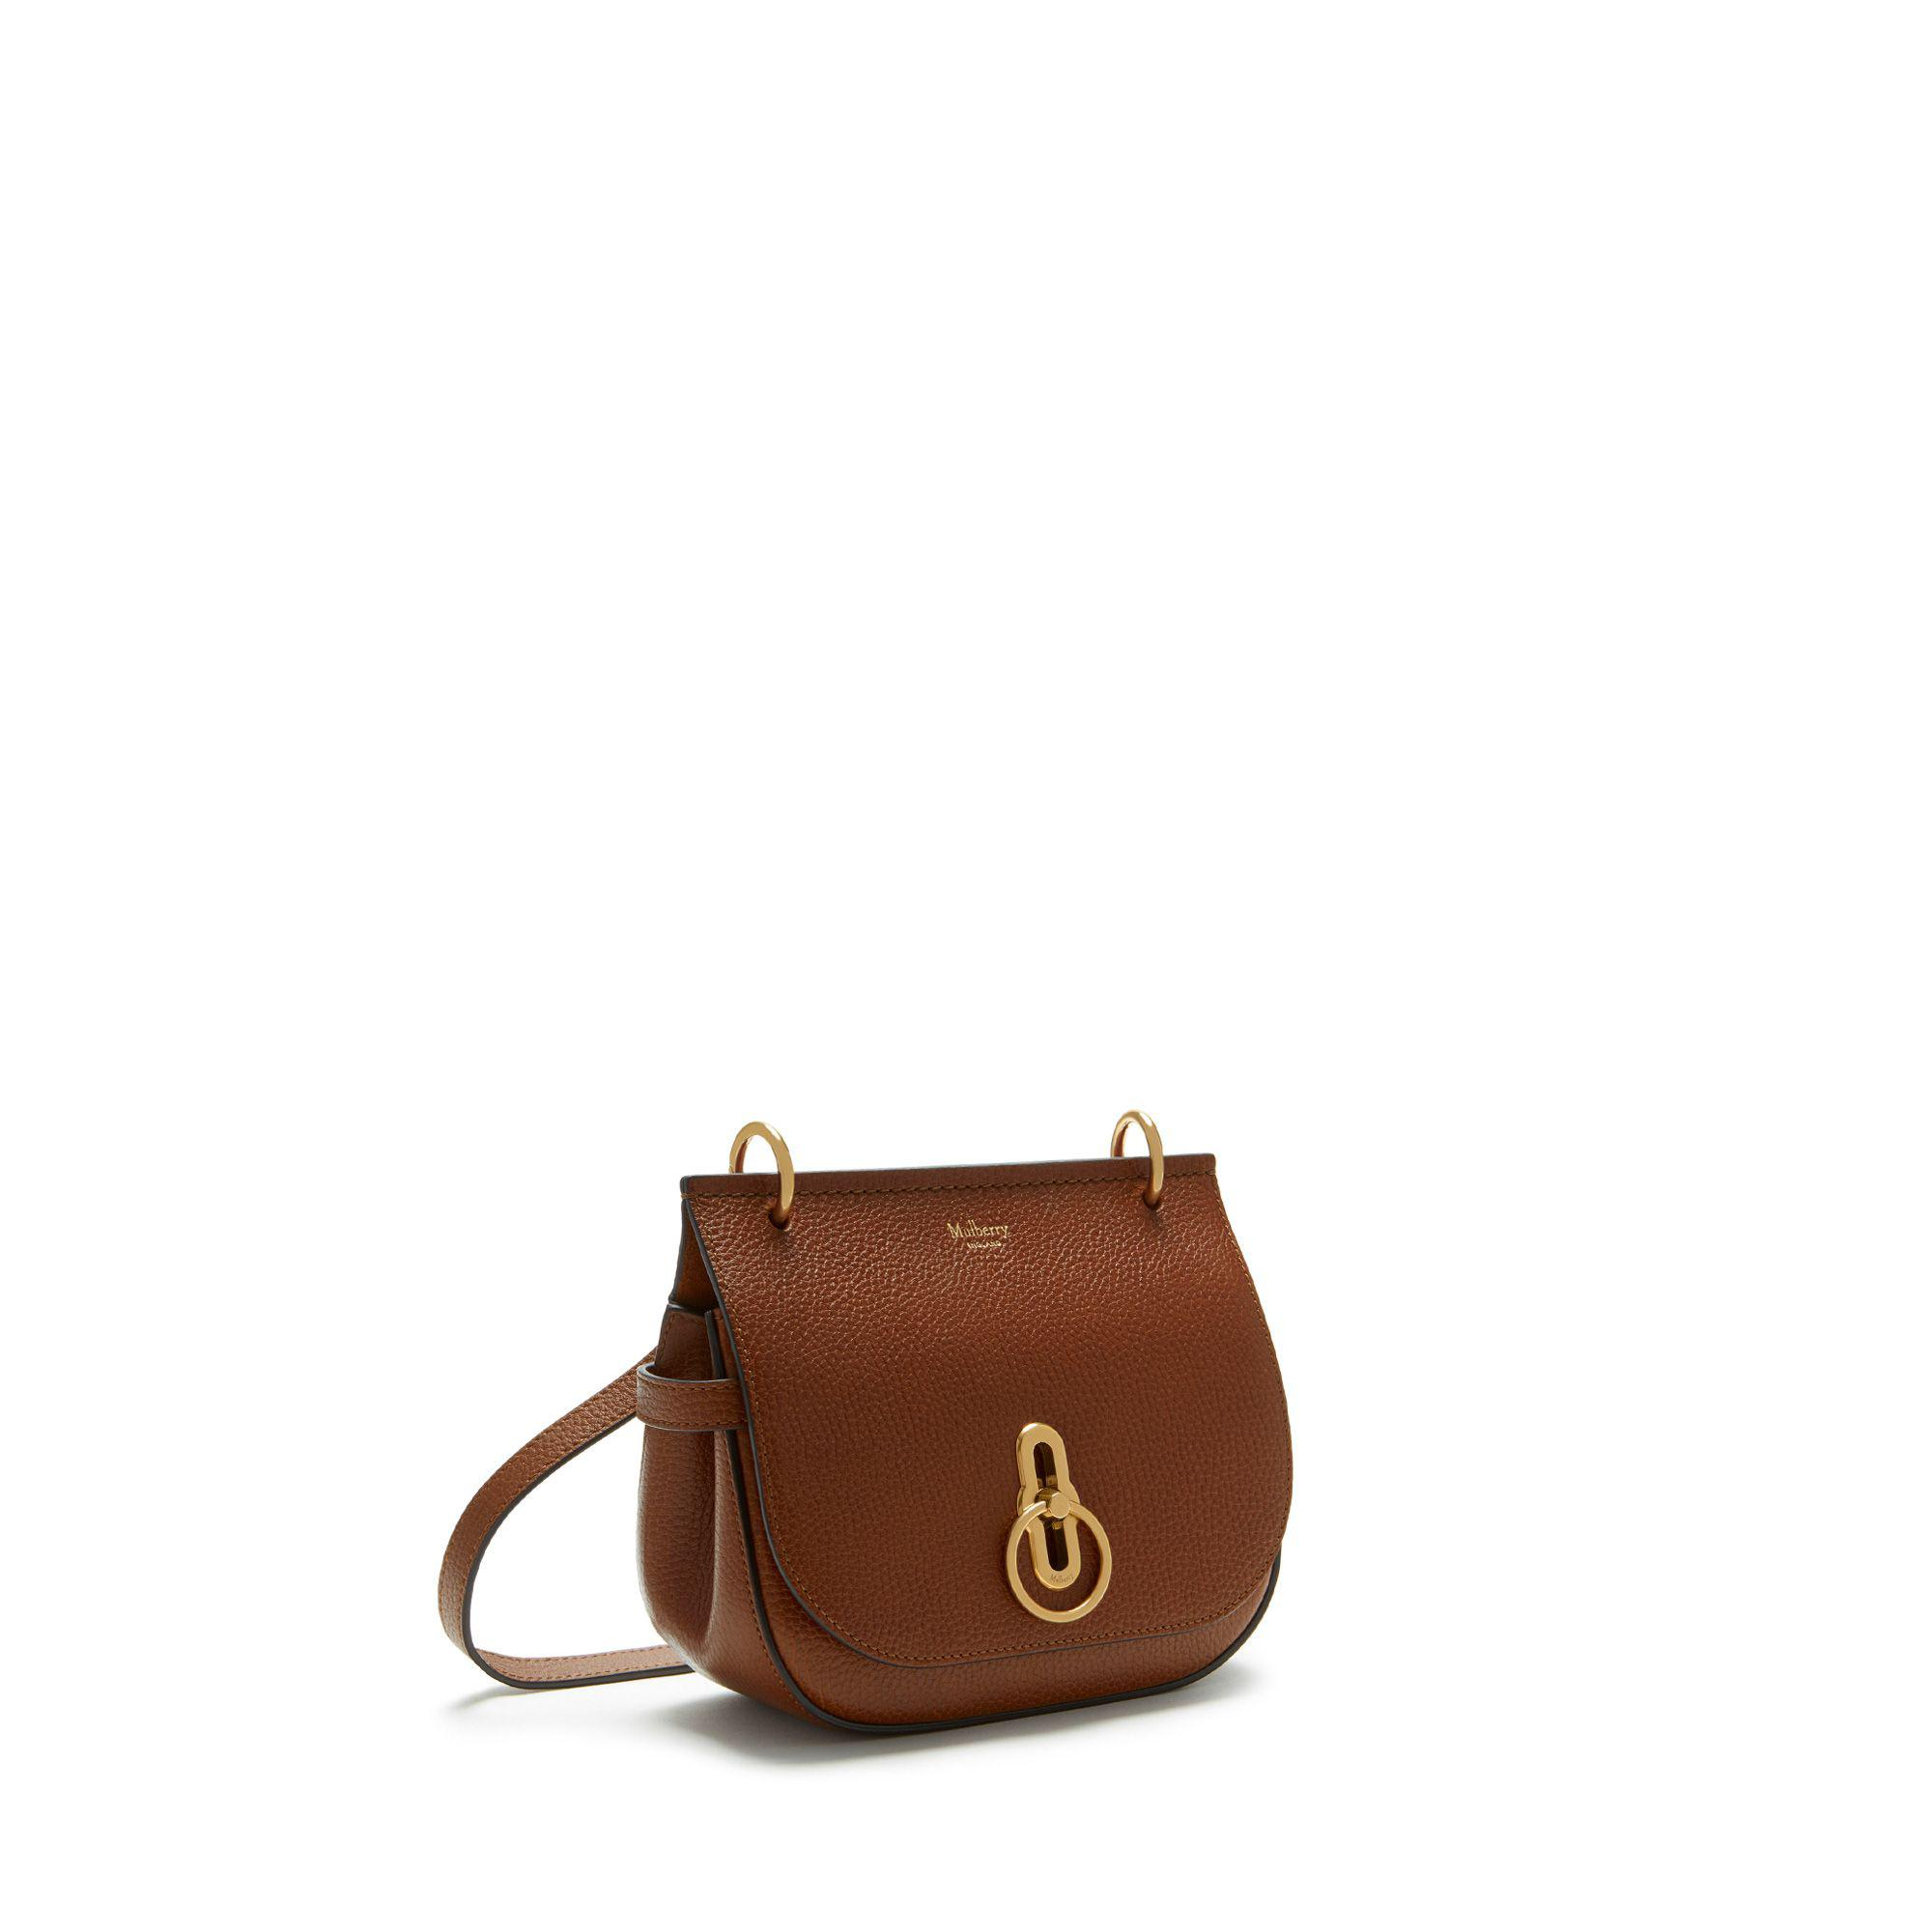 625089935c Mulberry - Brown Small Amberley Satchel In Oak Natural Grain Leather -  Lyst. View fullscreen